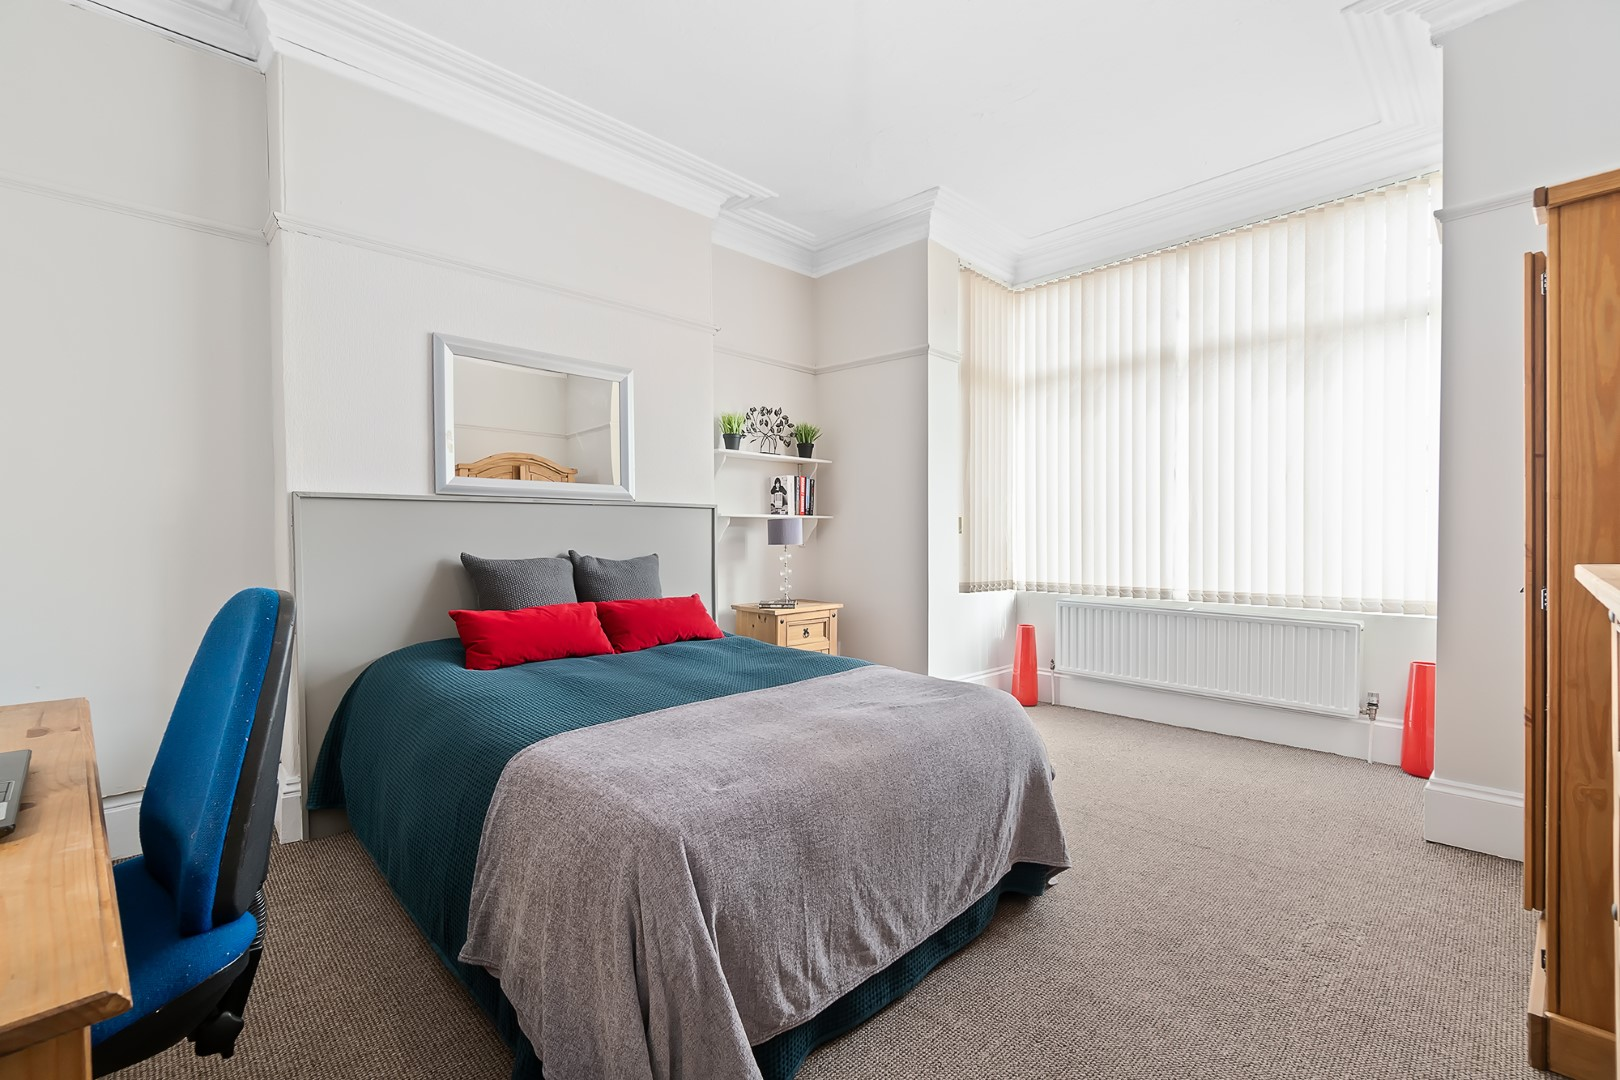 2 bedrooms Bedford Terrace